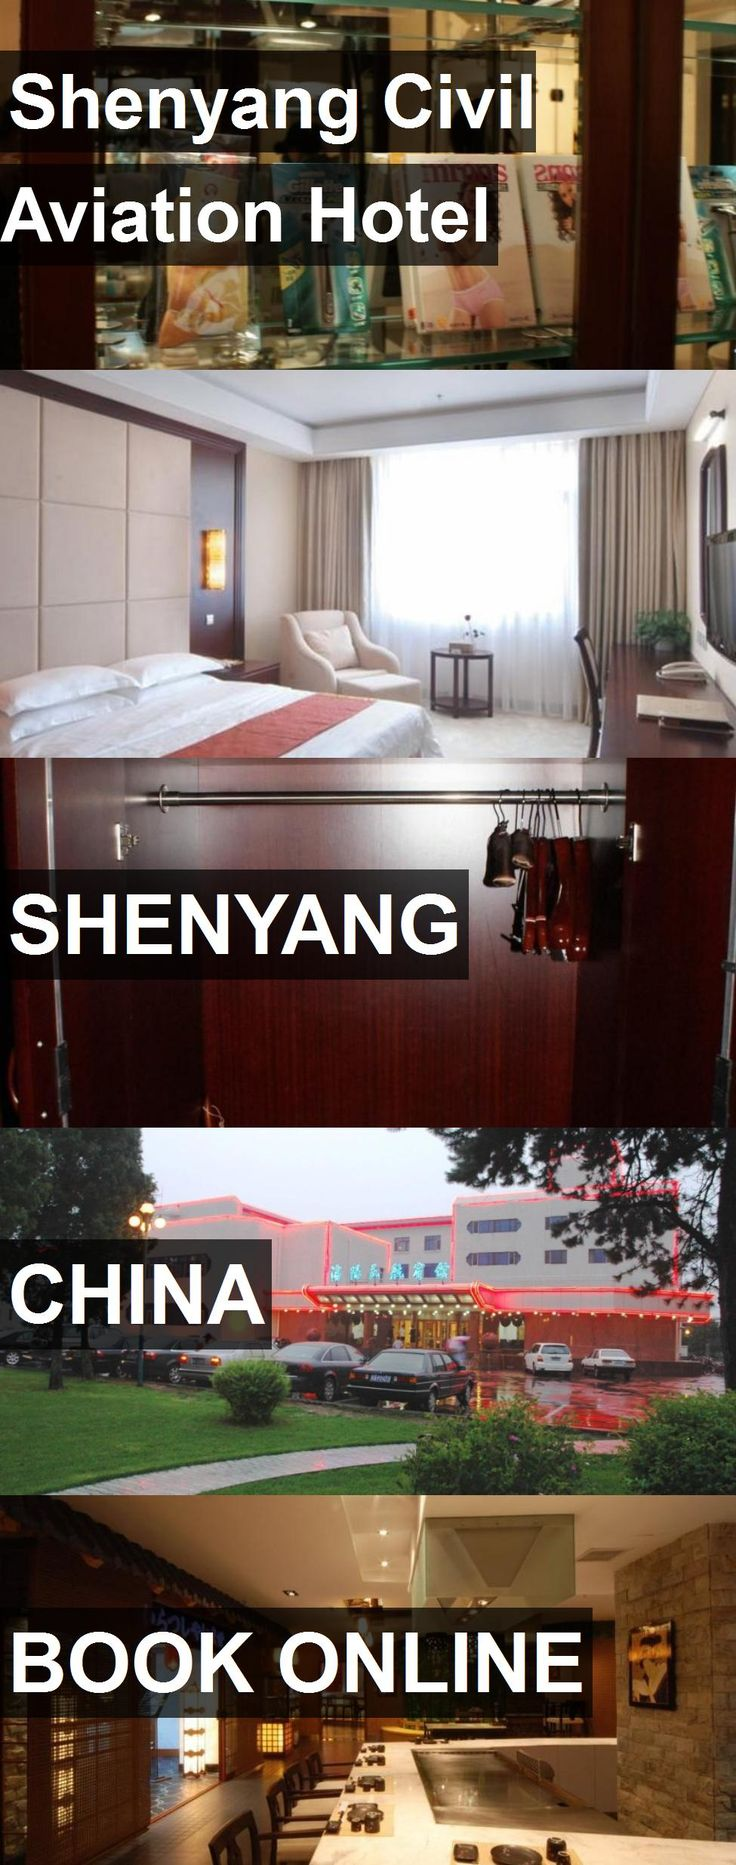 Shenyang Civil Aviation Hotel in Shenyang, China. For more information, photos, reviews and best prices please follow the link. #China #Shenyang #travel #vacation #hotel